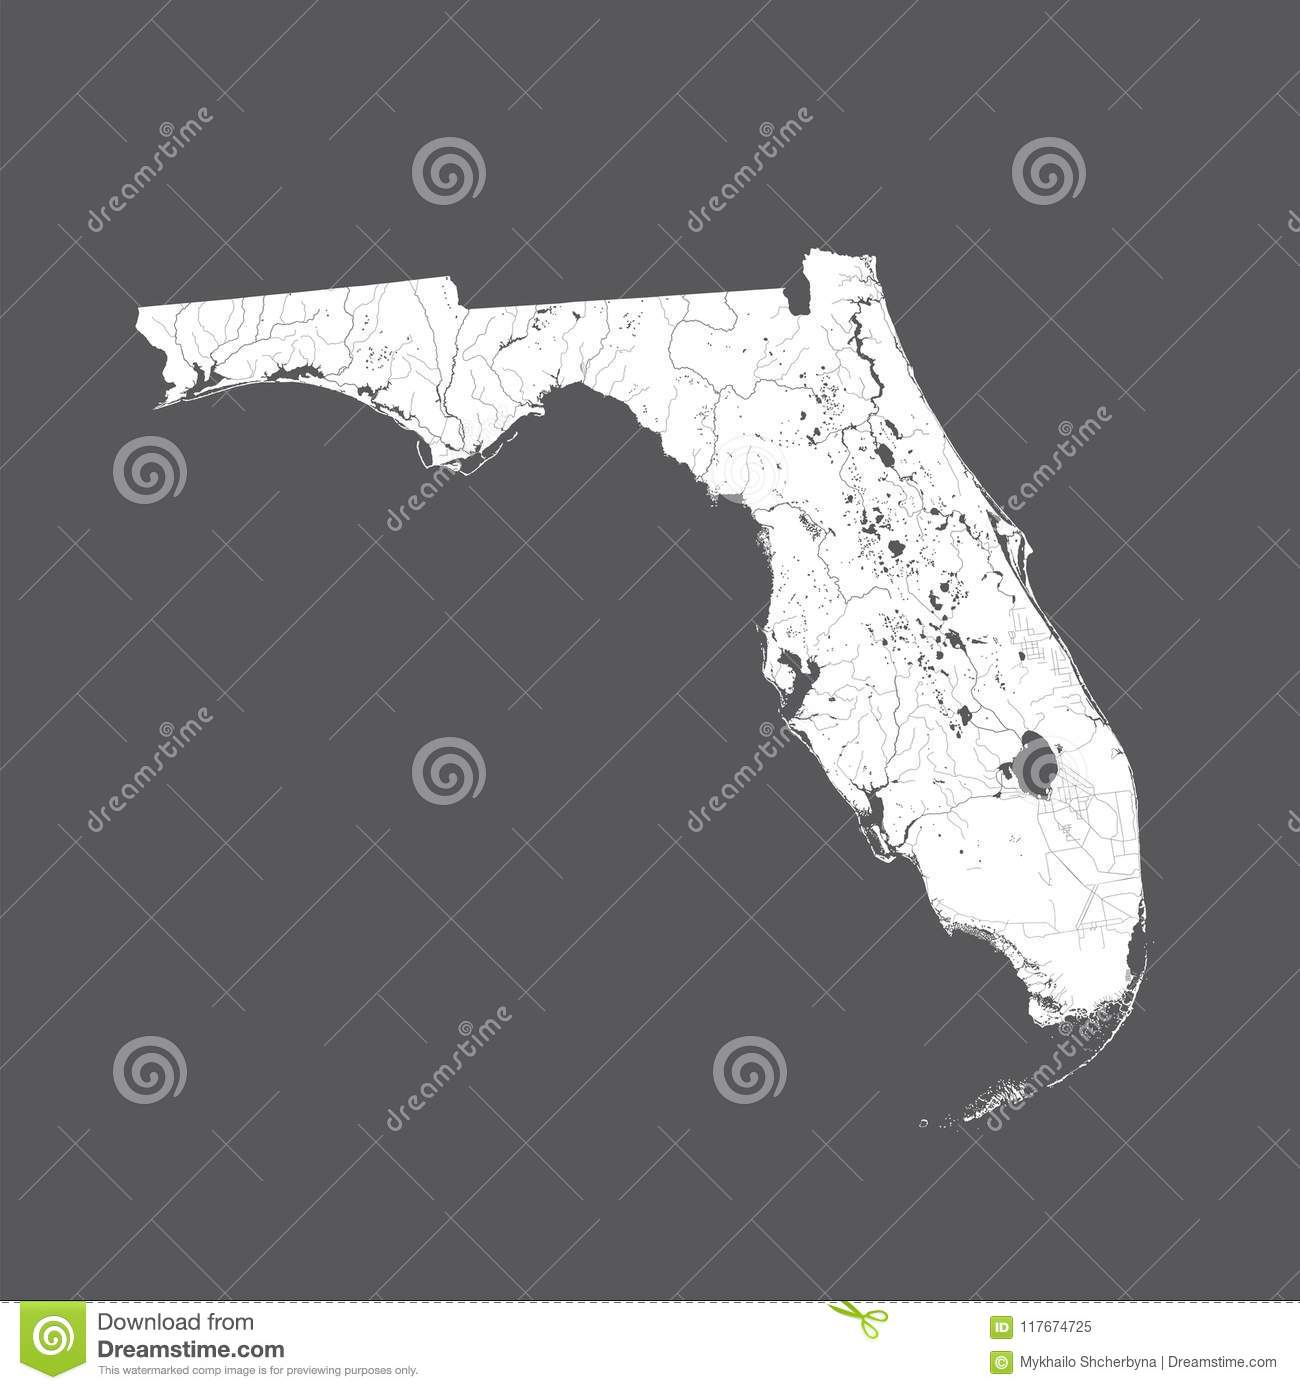 Map Of Florida With Lakes And Rivers Stock Vector Illustration Of